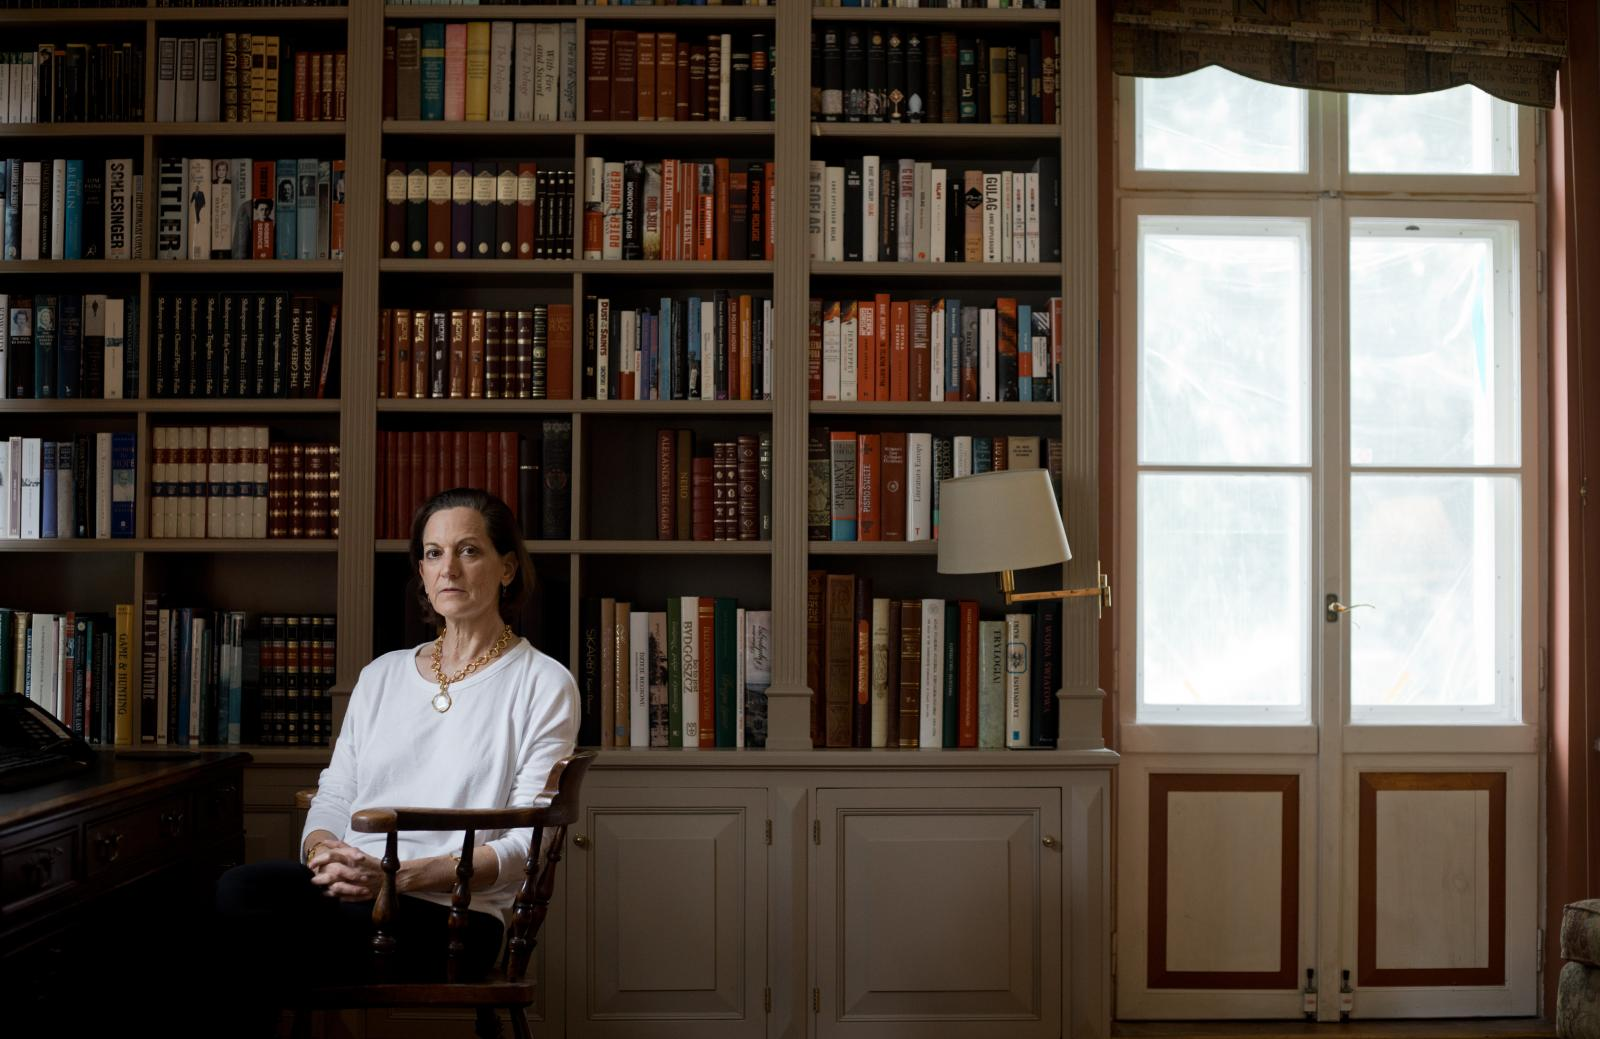 """NEAR NAKLO, POLAND, 7/07/2020: Writer Anne Applebaum is posing for photographer at her village mansion house called """"Dwor Chobielin"""" in nothern Poland. (Photo by Piotr Malecki)"""